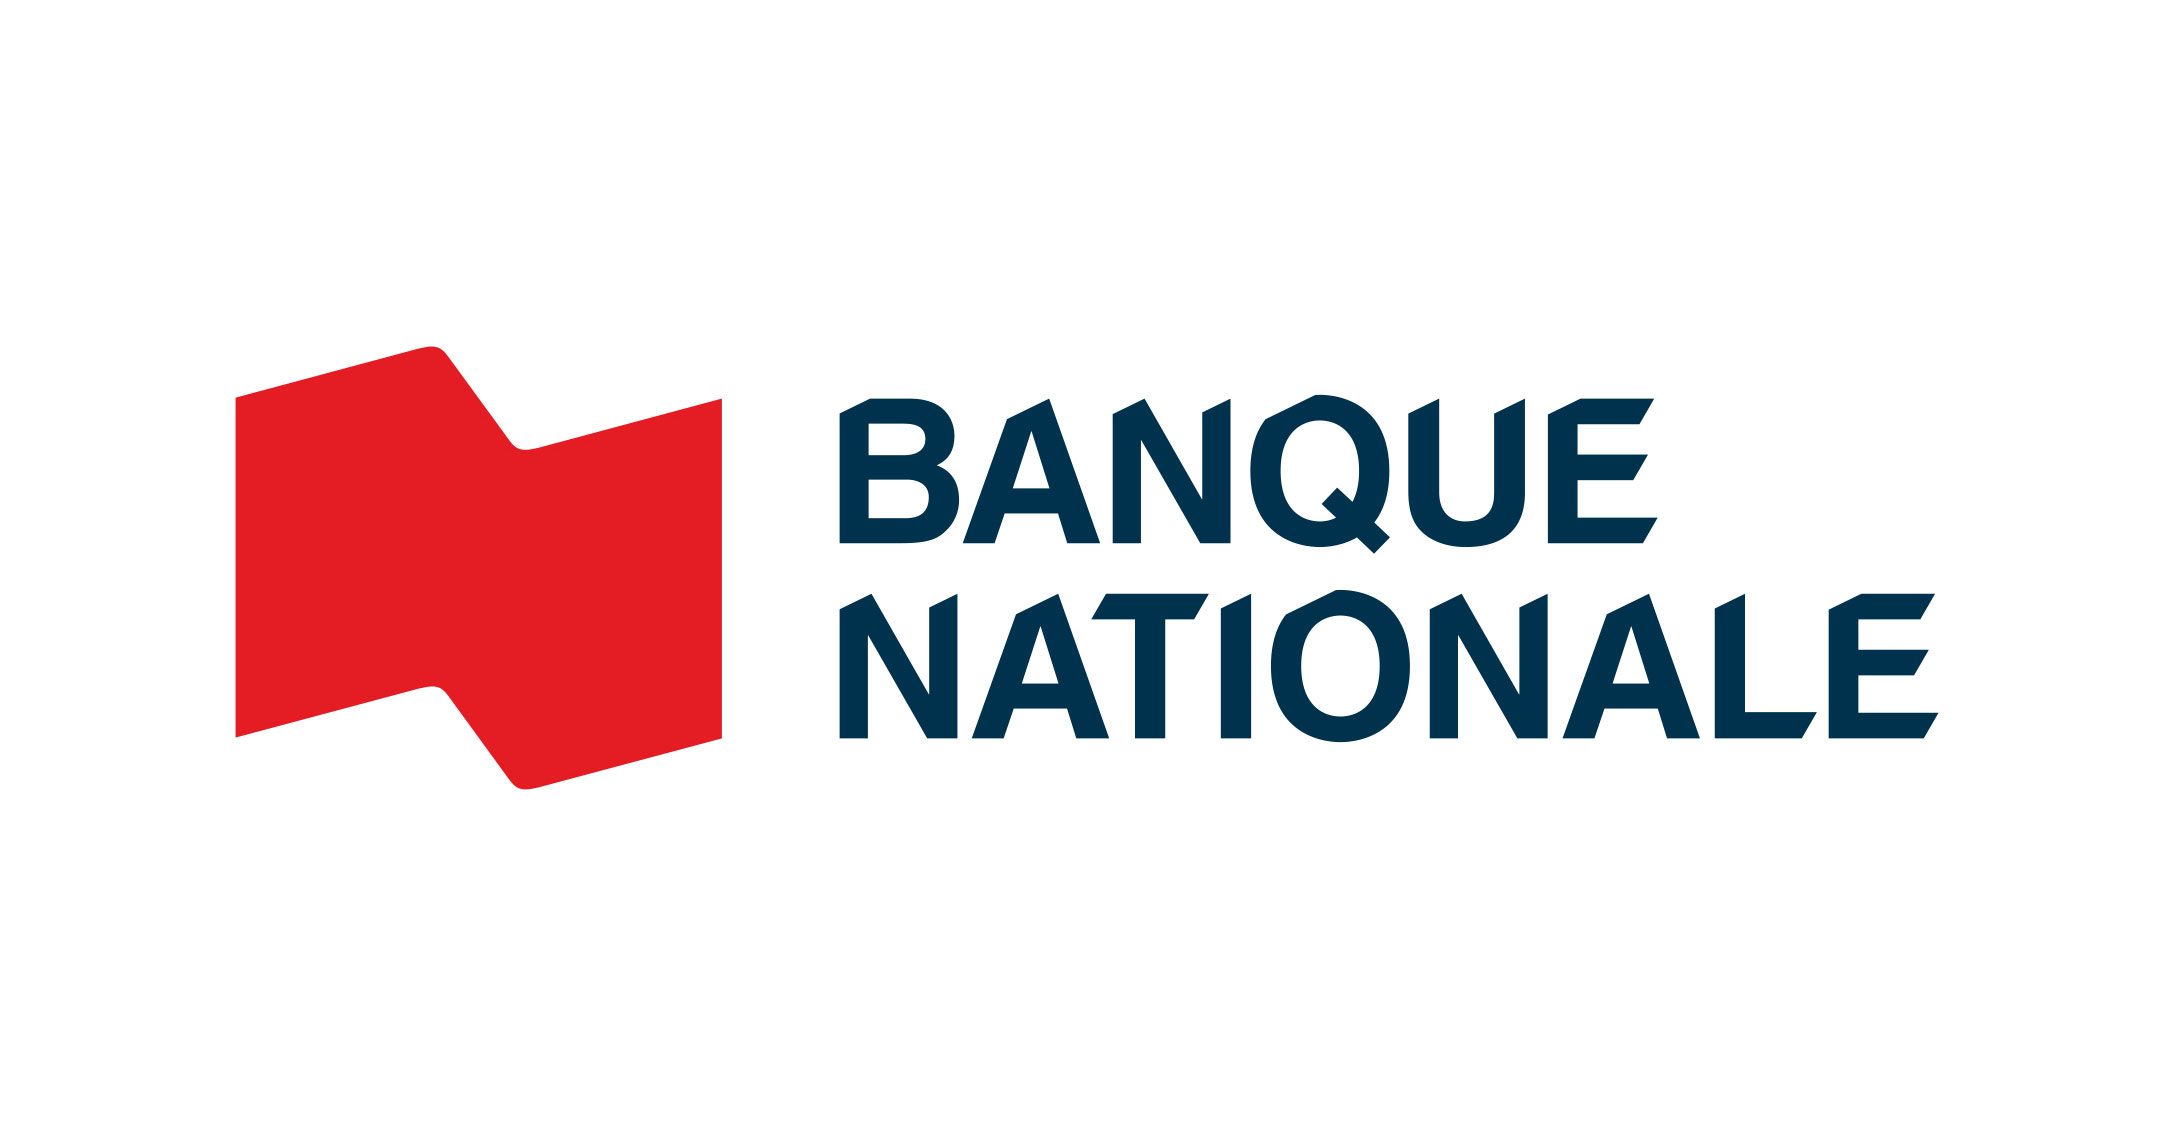 Thanks to the team of National Bank Montreal East area!